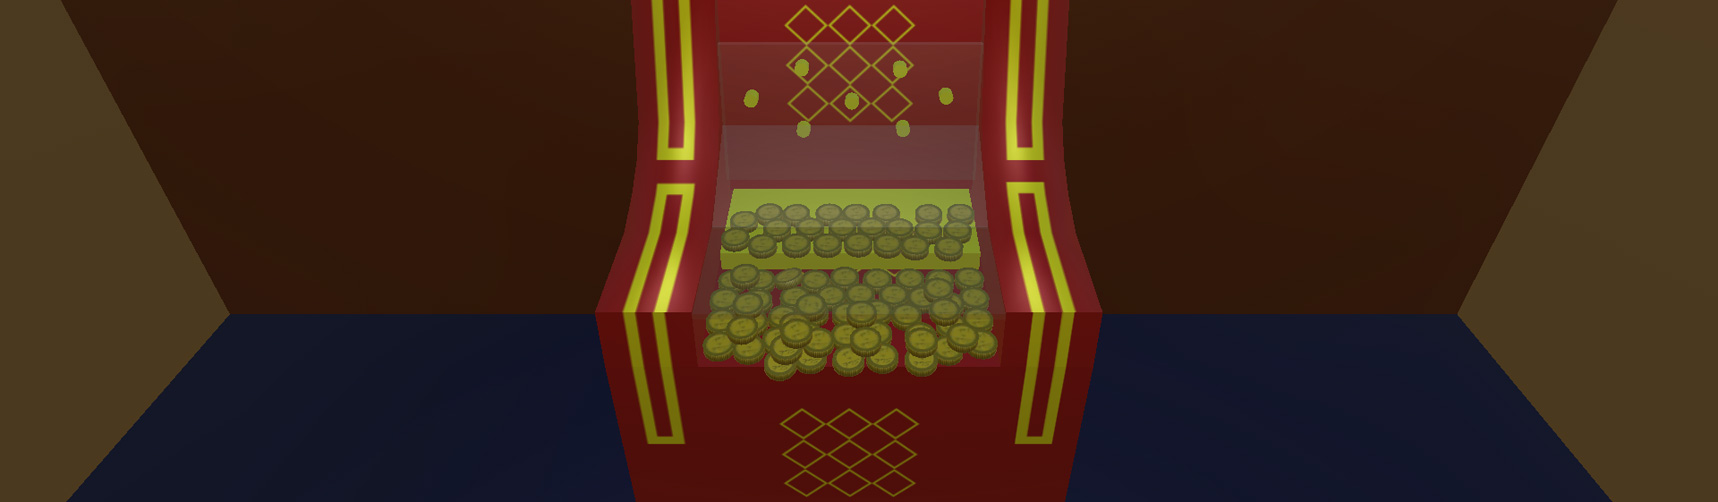 A red and gold coin pusher machine covered in coins